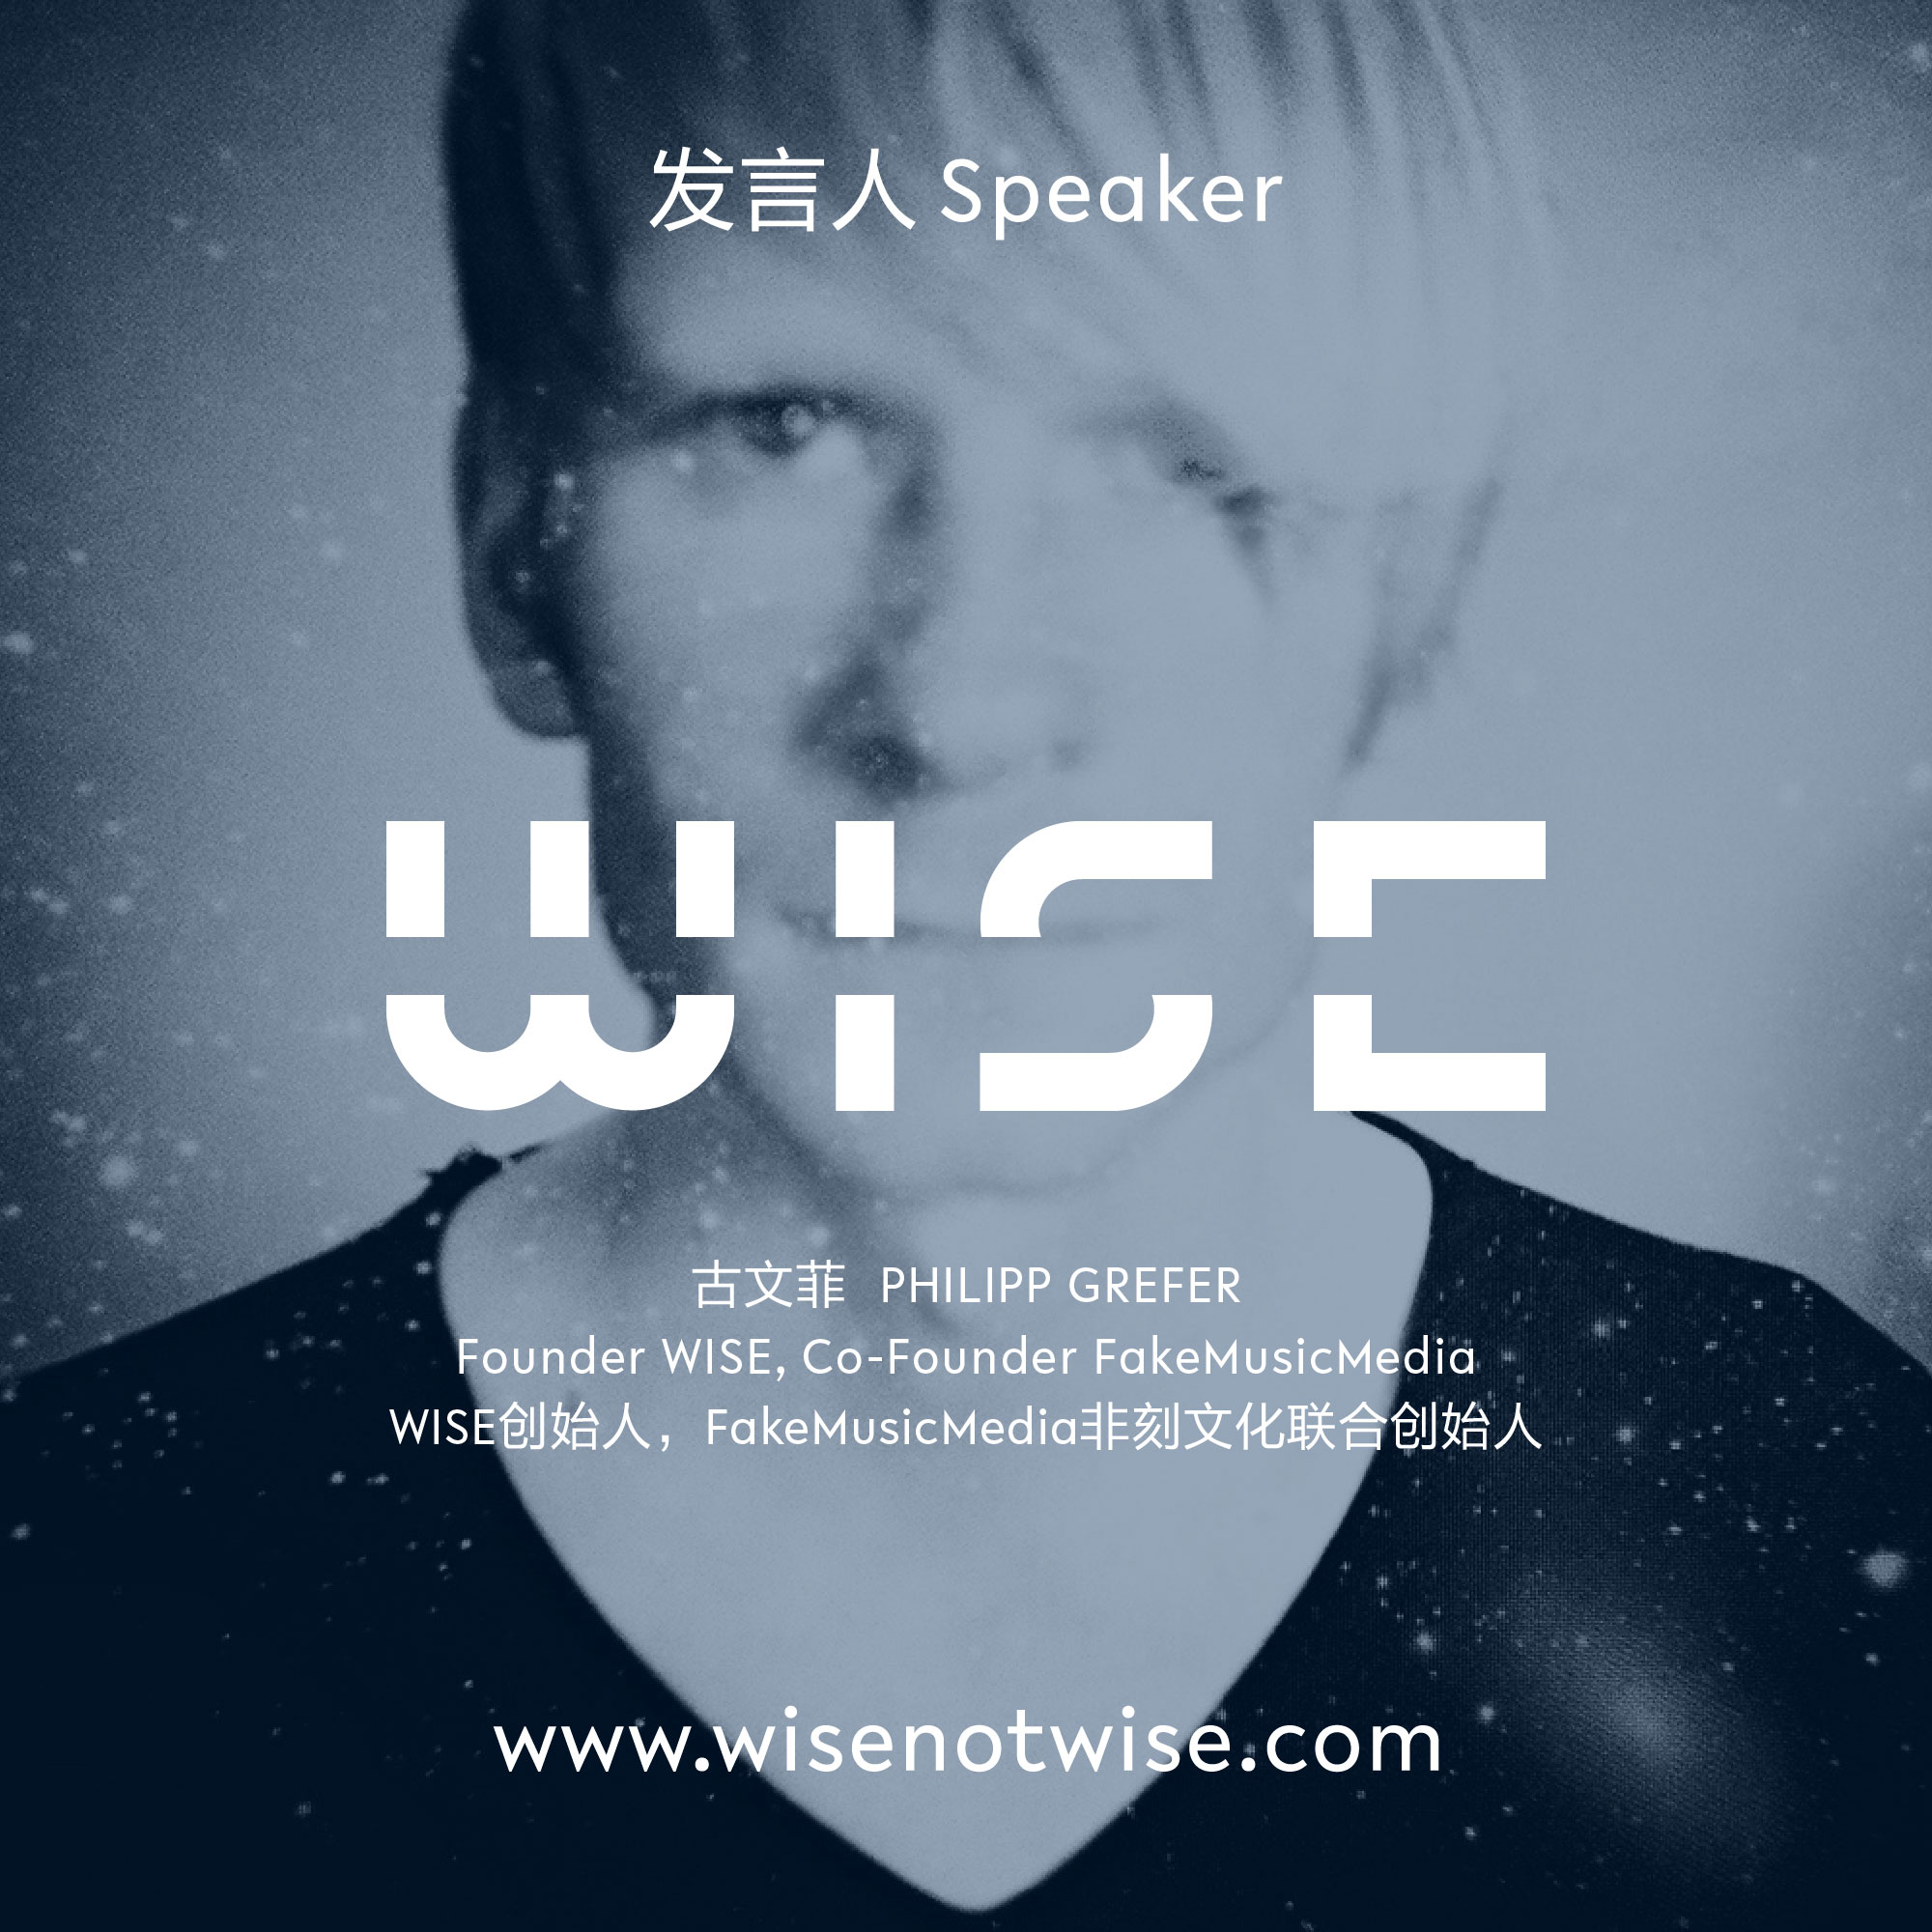 Philipp Grefer (Founder of WISE, Co-Founder of Fake Music Media)